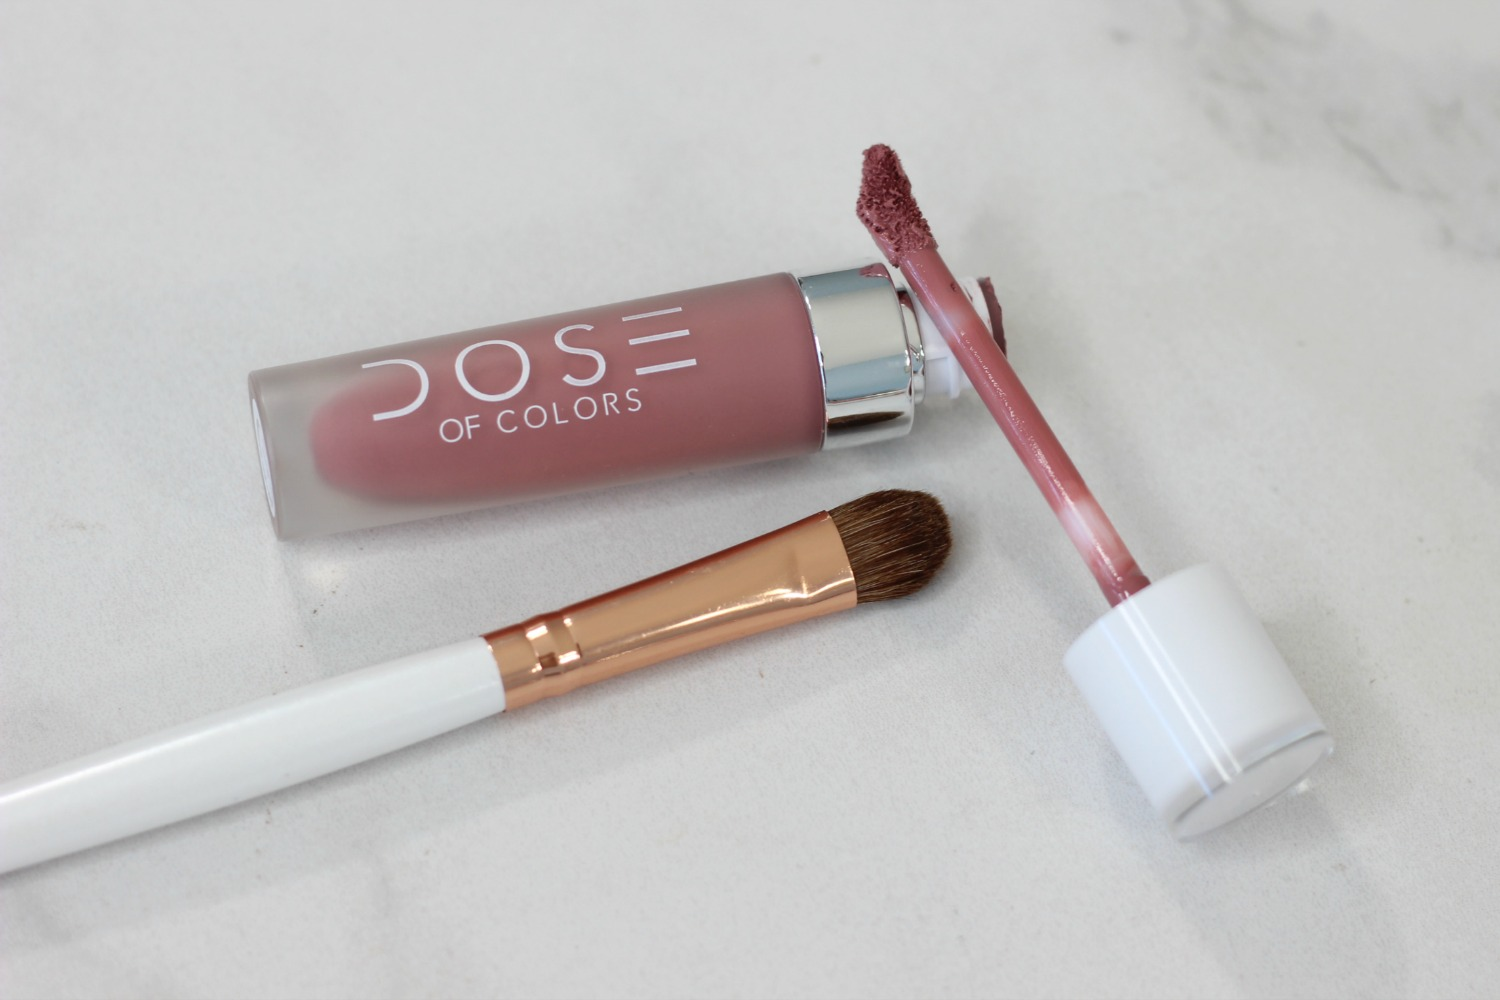 Dose of Colors Review Stone Liquid Lipstick